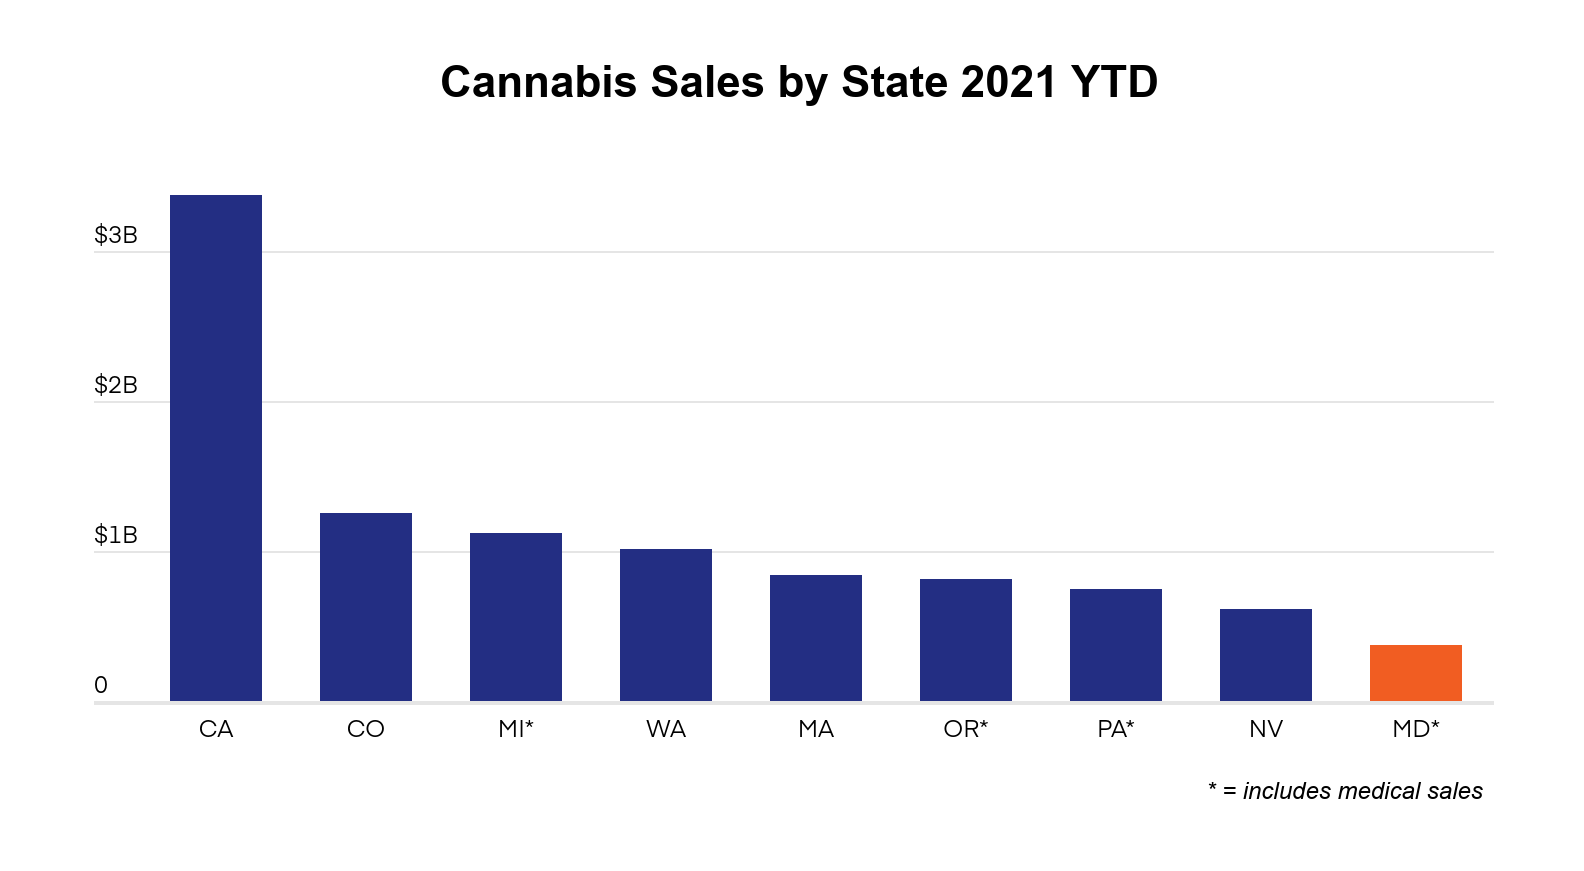 Maryland cannabis market report graph 1: total cannabis sales by state